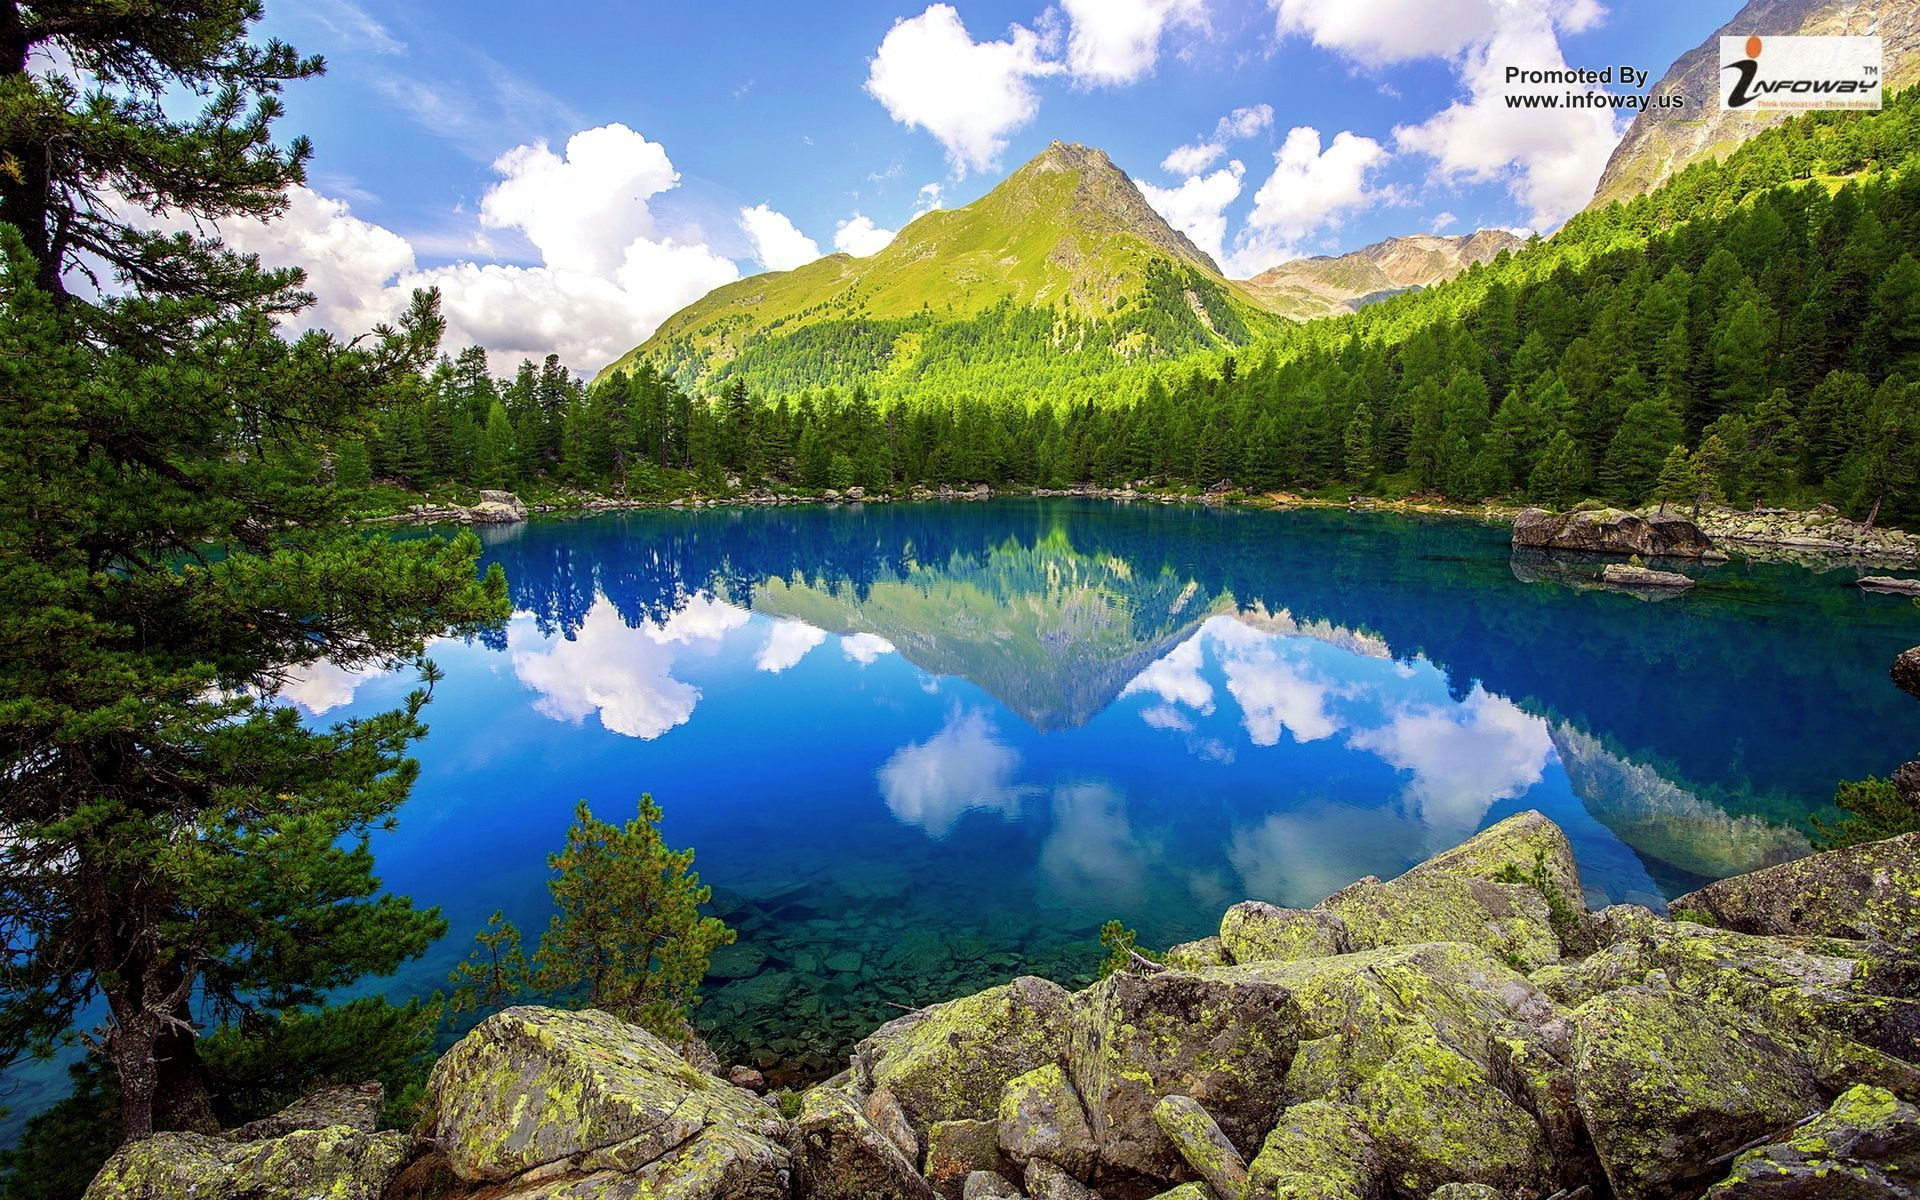 Awesome Lake Picture For Any Query Email Sales Infoway Us Or Visit Http Www Infoway Us Landscape Wallpaper Lake Landscape Cool Pictures Of Nature